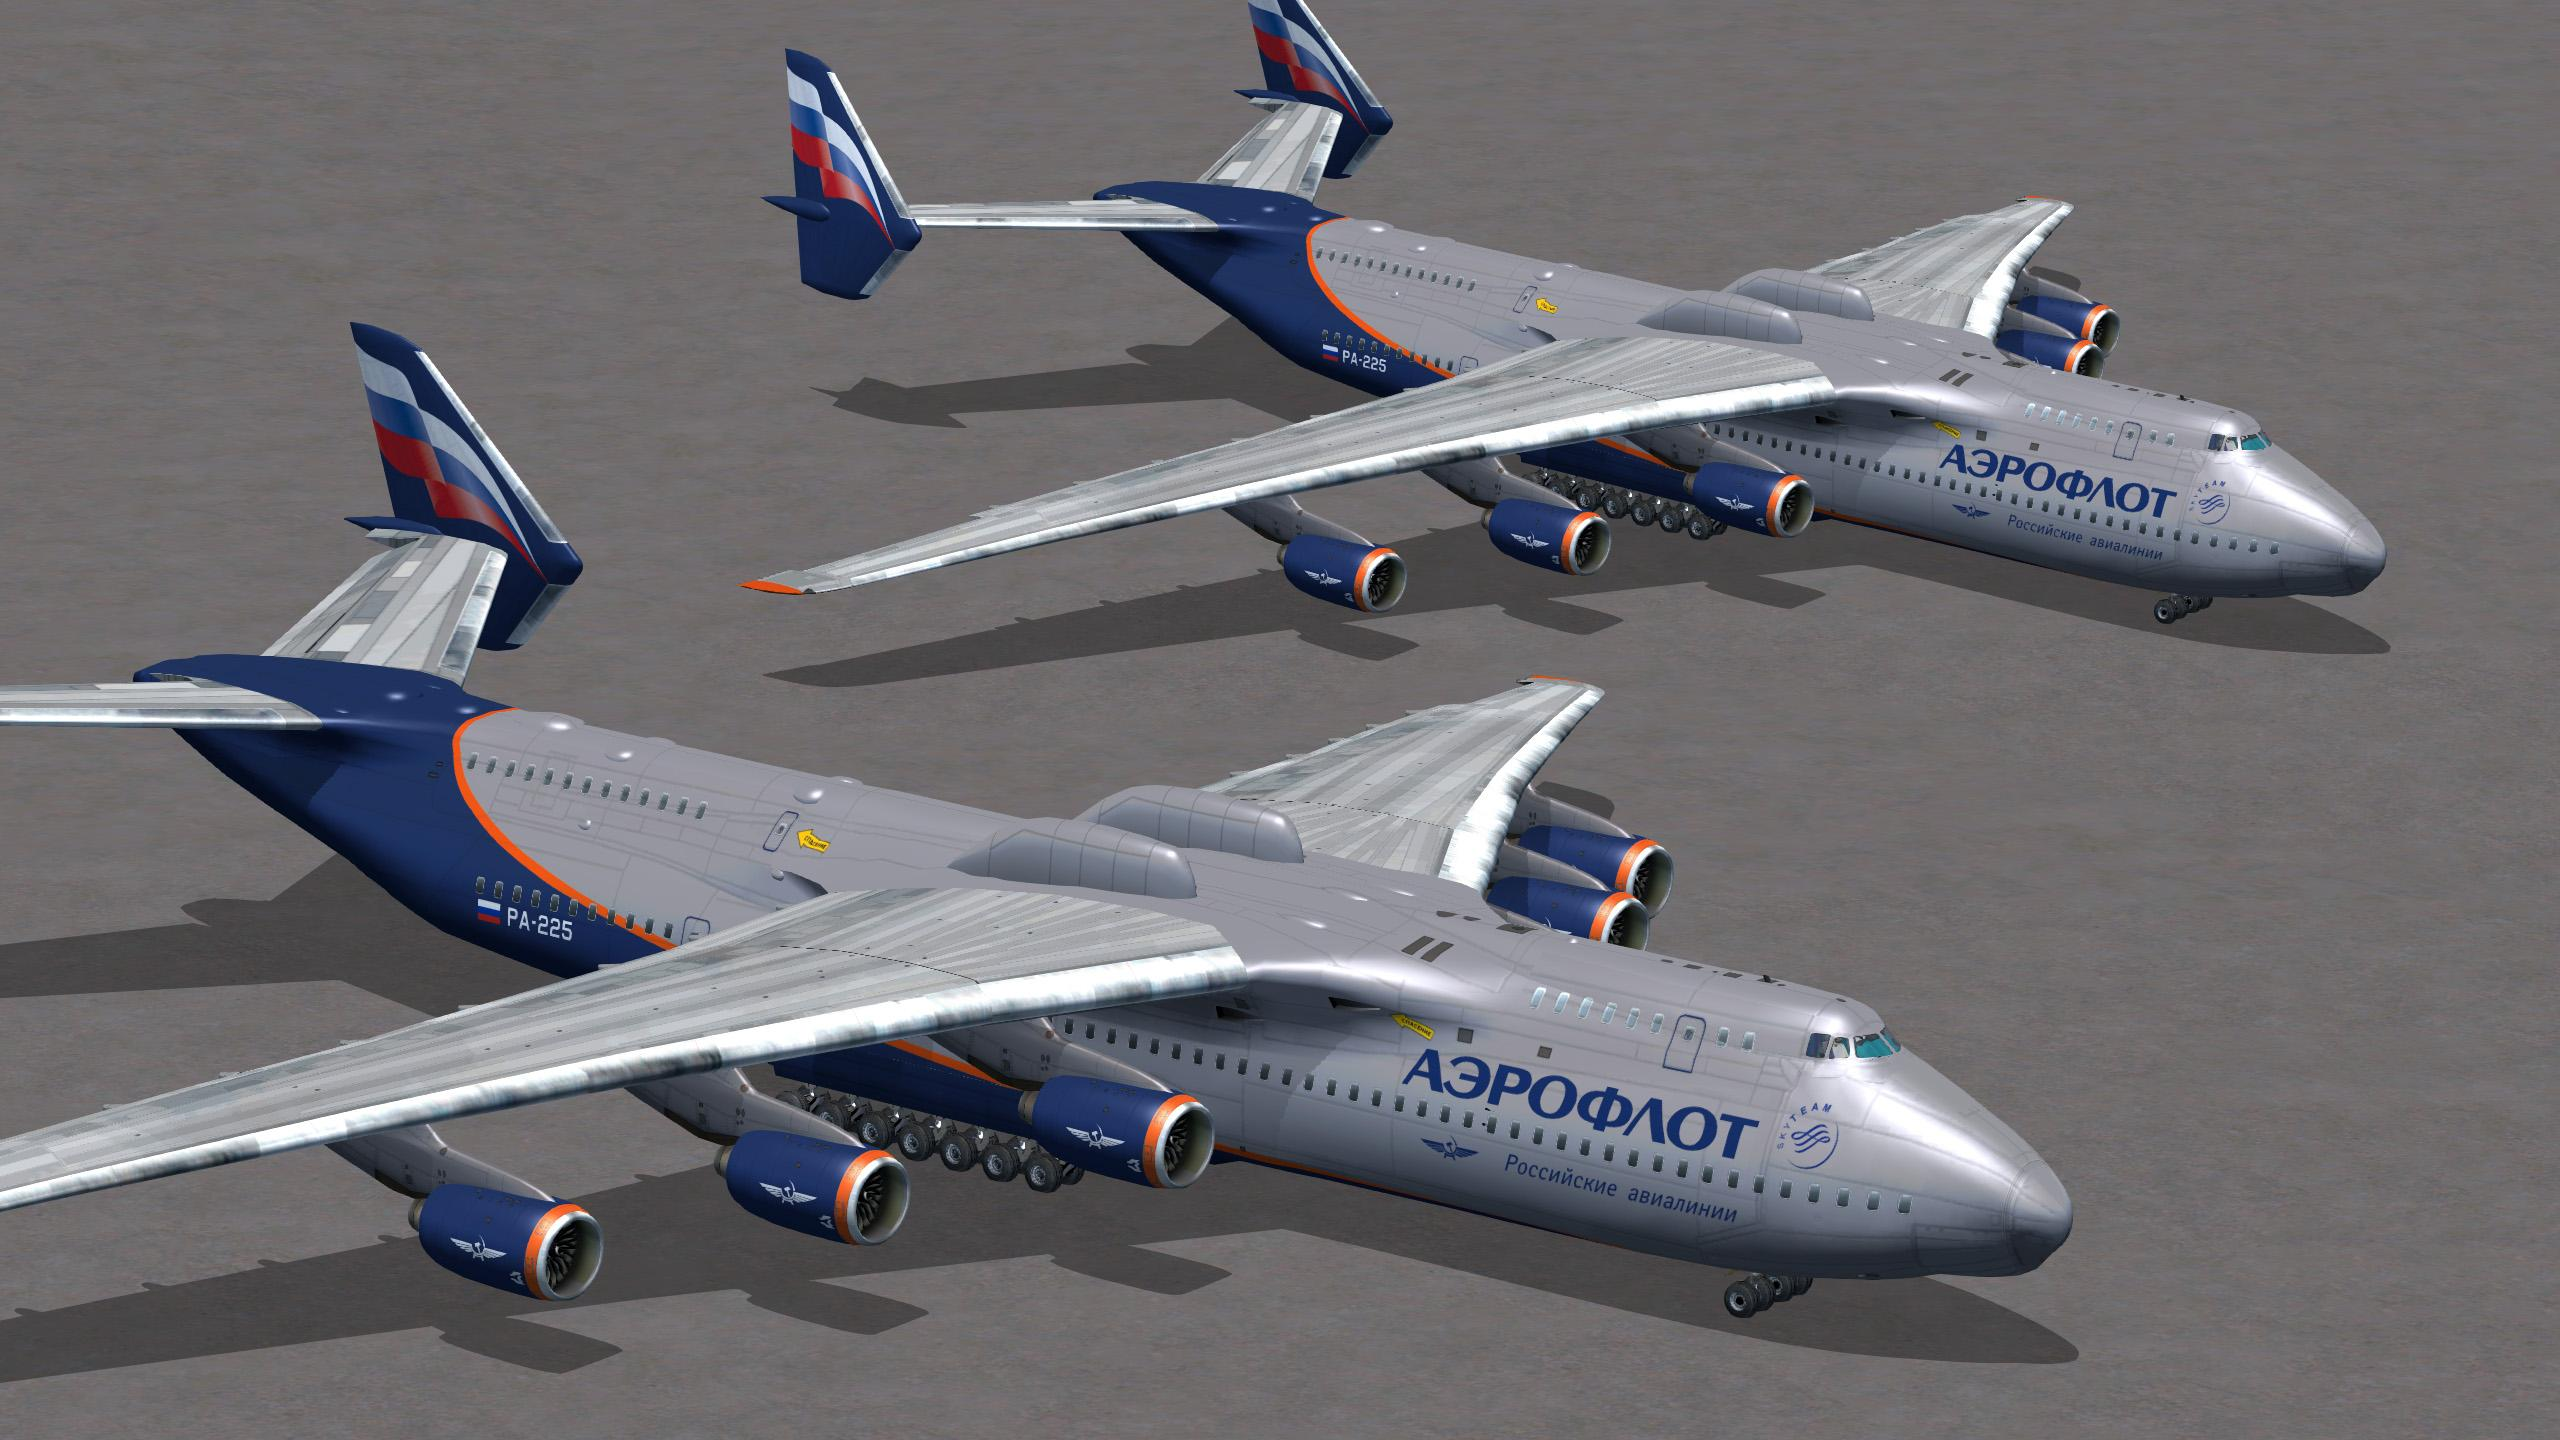 Fsx hd liveries